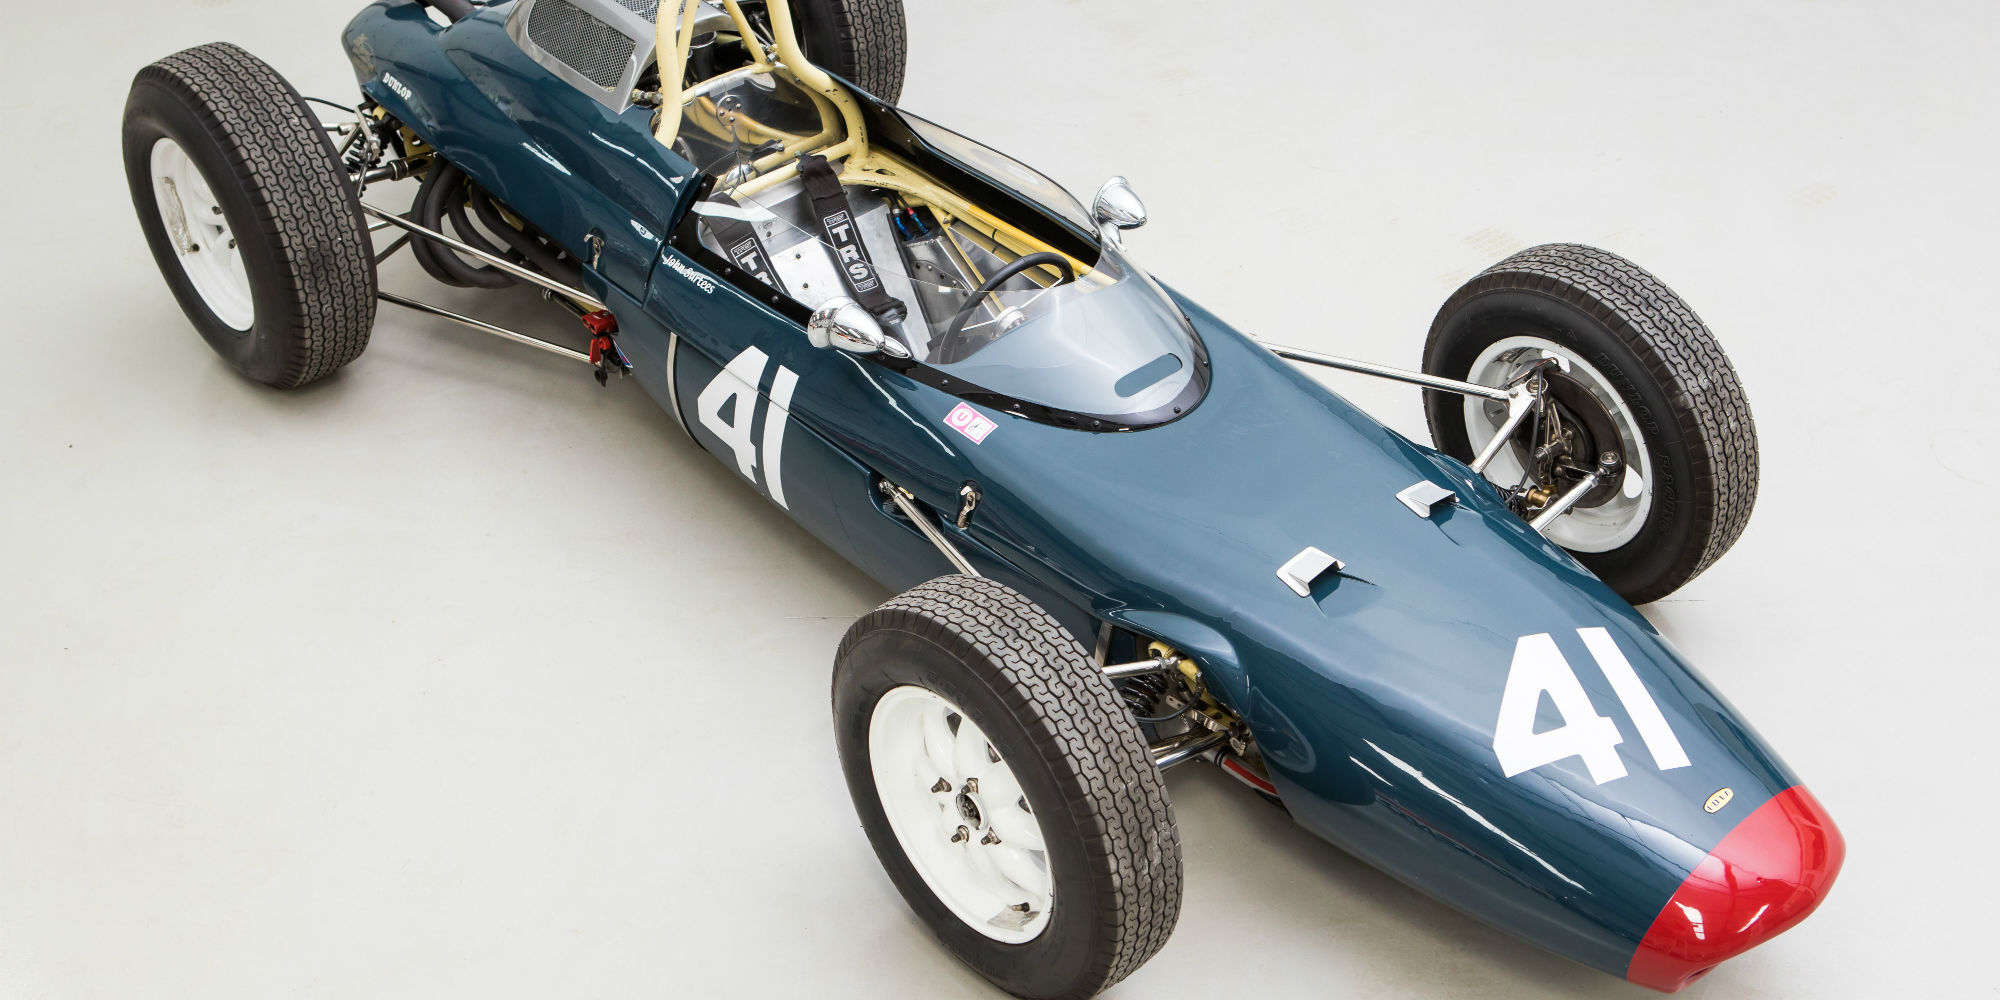 The Ex – John Surtees 1962 Lola Mk4 Formula 1